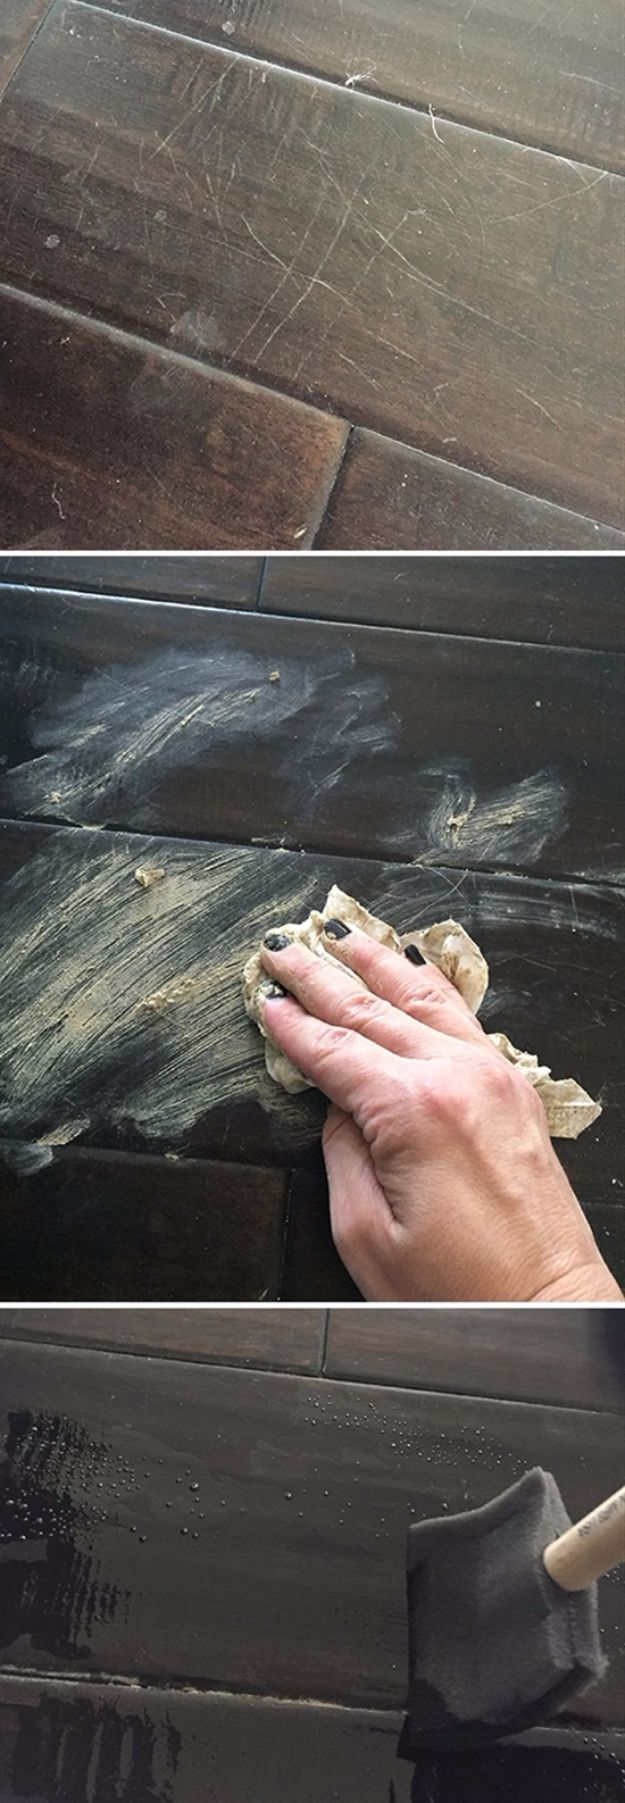 Easy Home Repair Hacks - Fix Scratches In Wood Floors - Quick Ways to Easily Fix Broken Things Around The House - DIY Tricks for Home Improvement and Repairs - Simple Solutions for Kitchen, Bath, Garage and Yard - Caulk, Grout, Wall Repair and Wood Patching and Staining http://diyjoy.com/easy-home-repair-hacks